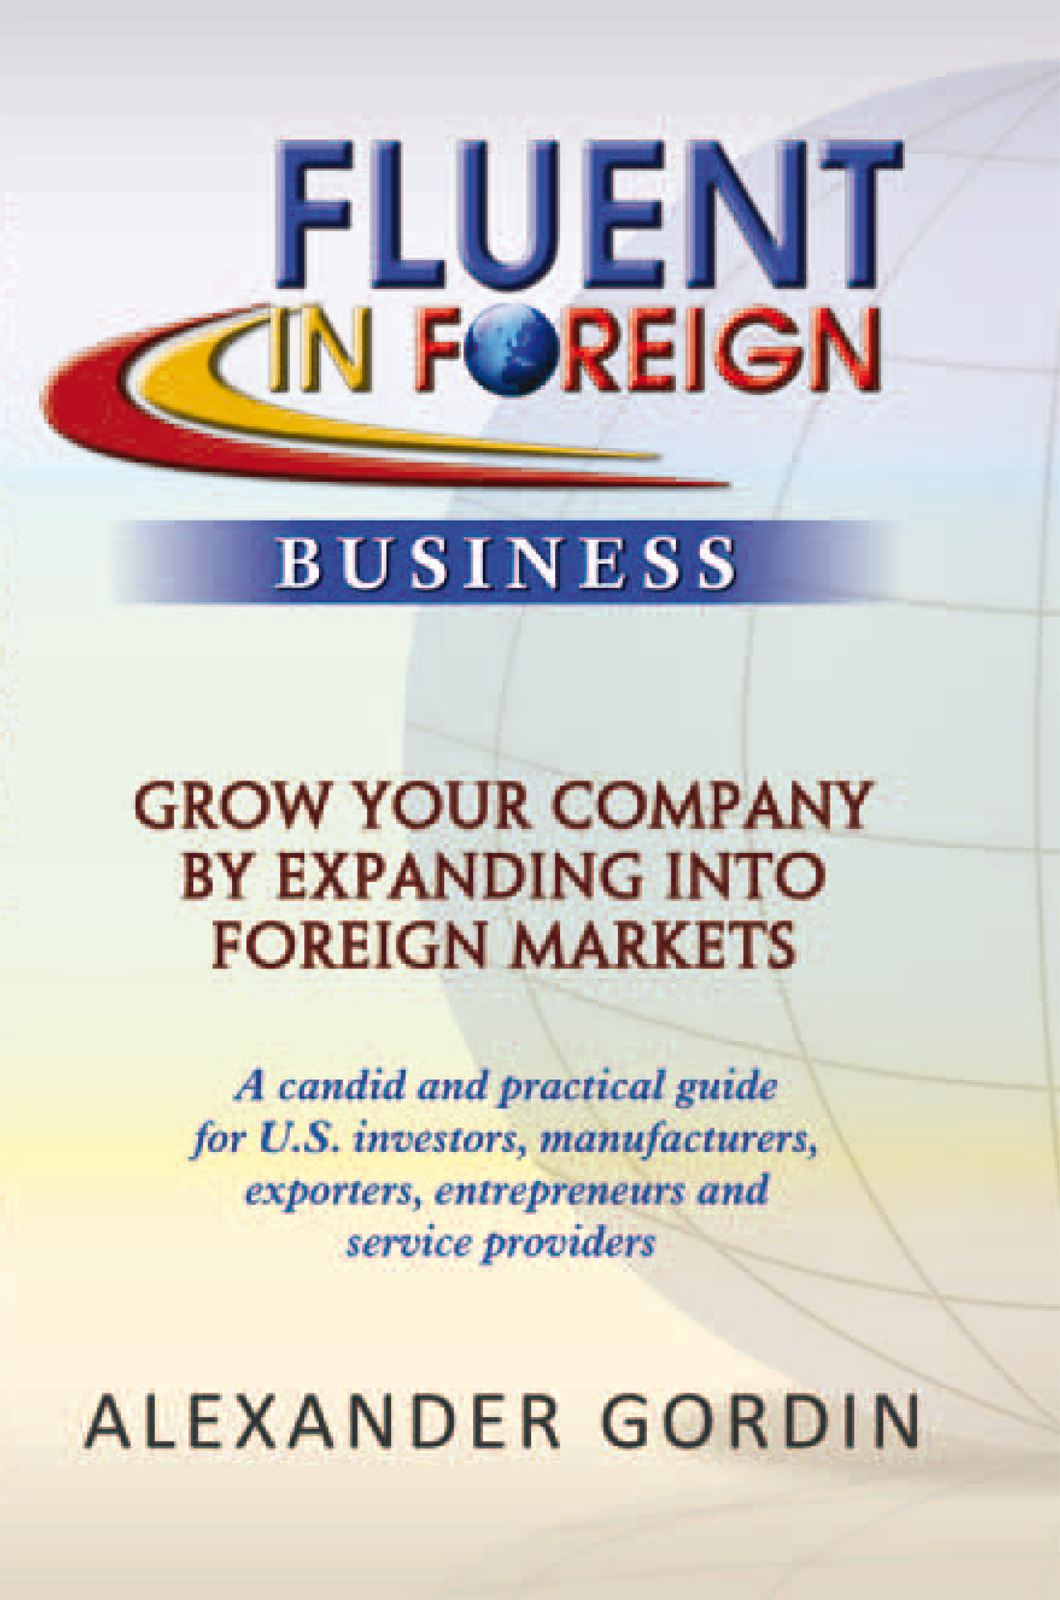 FLUENT IN FOREIGN Business